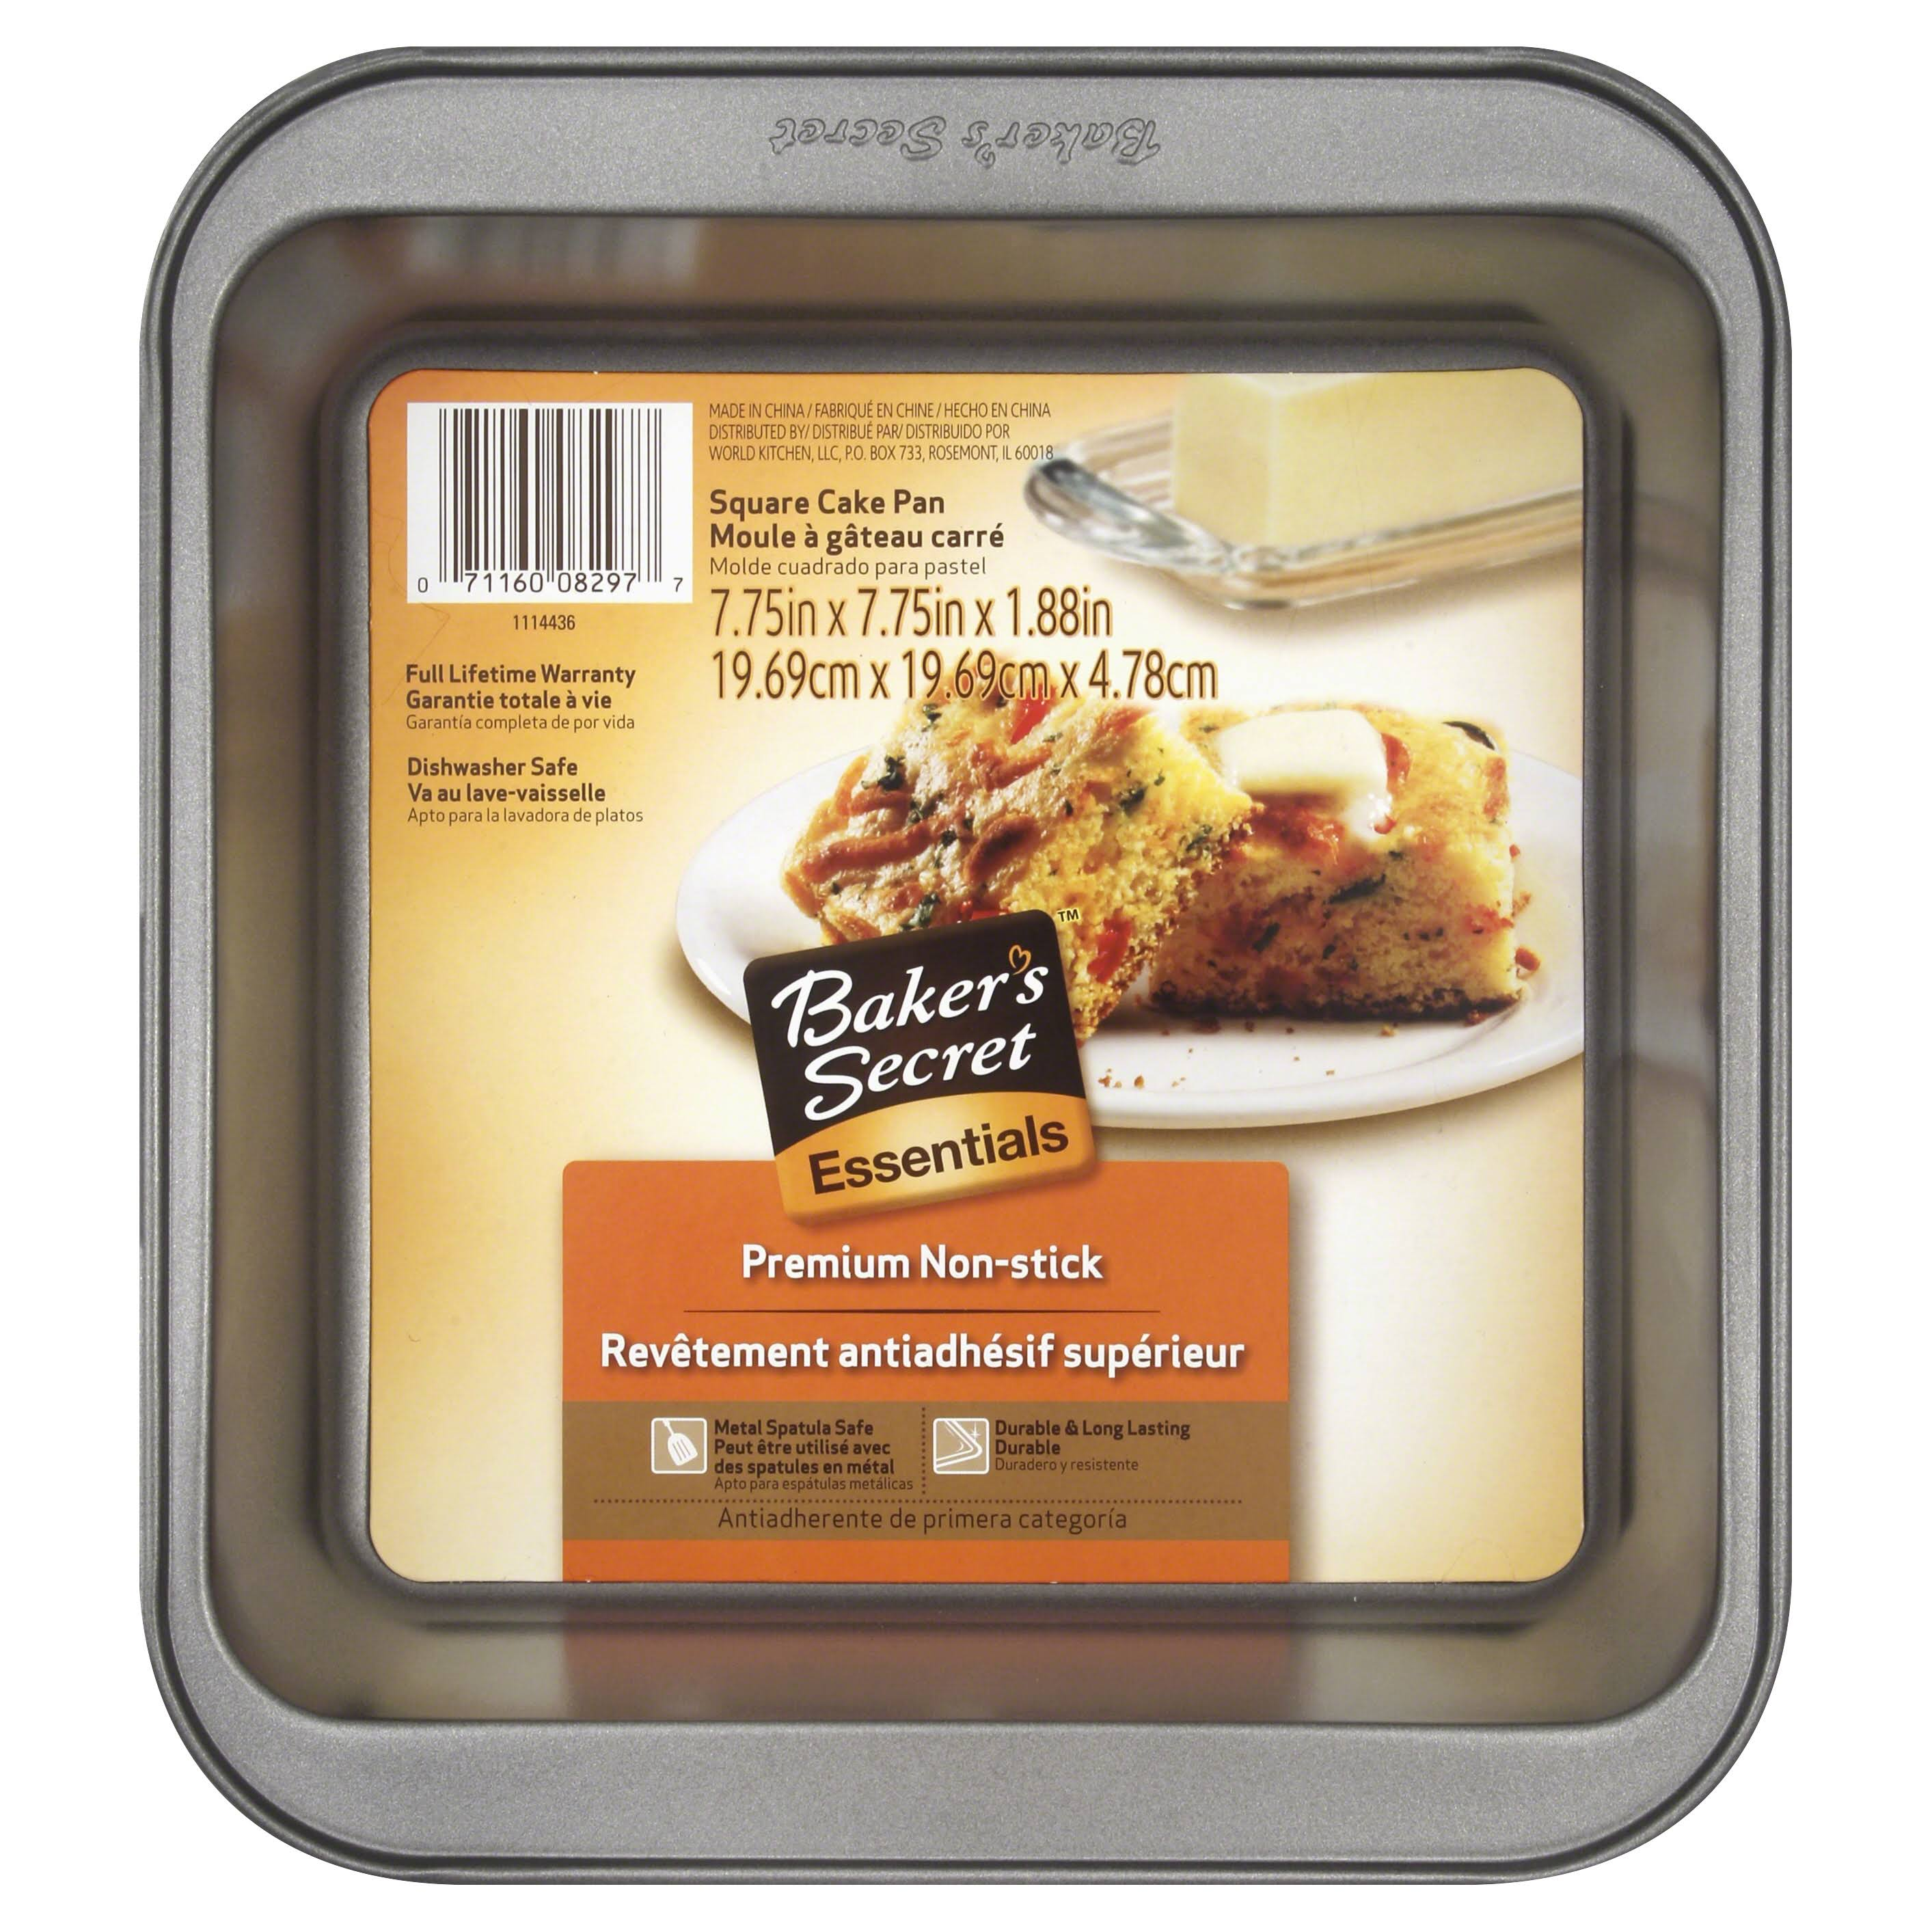 "Baker's Secret Square Cake Pan - 7.75"" X 7.75"" X 1.88"", Gray"